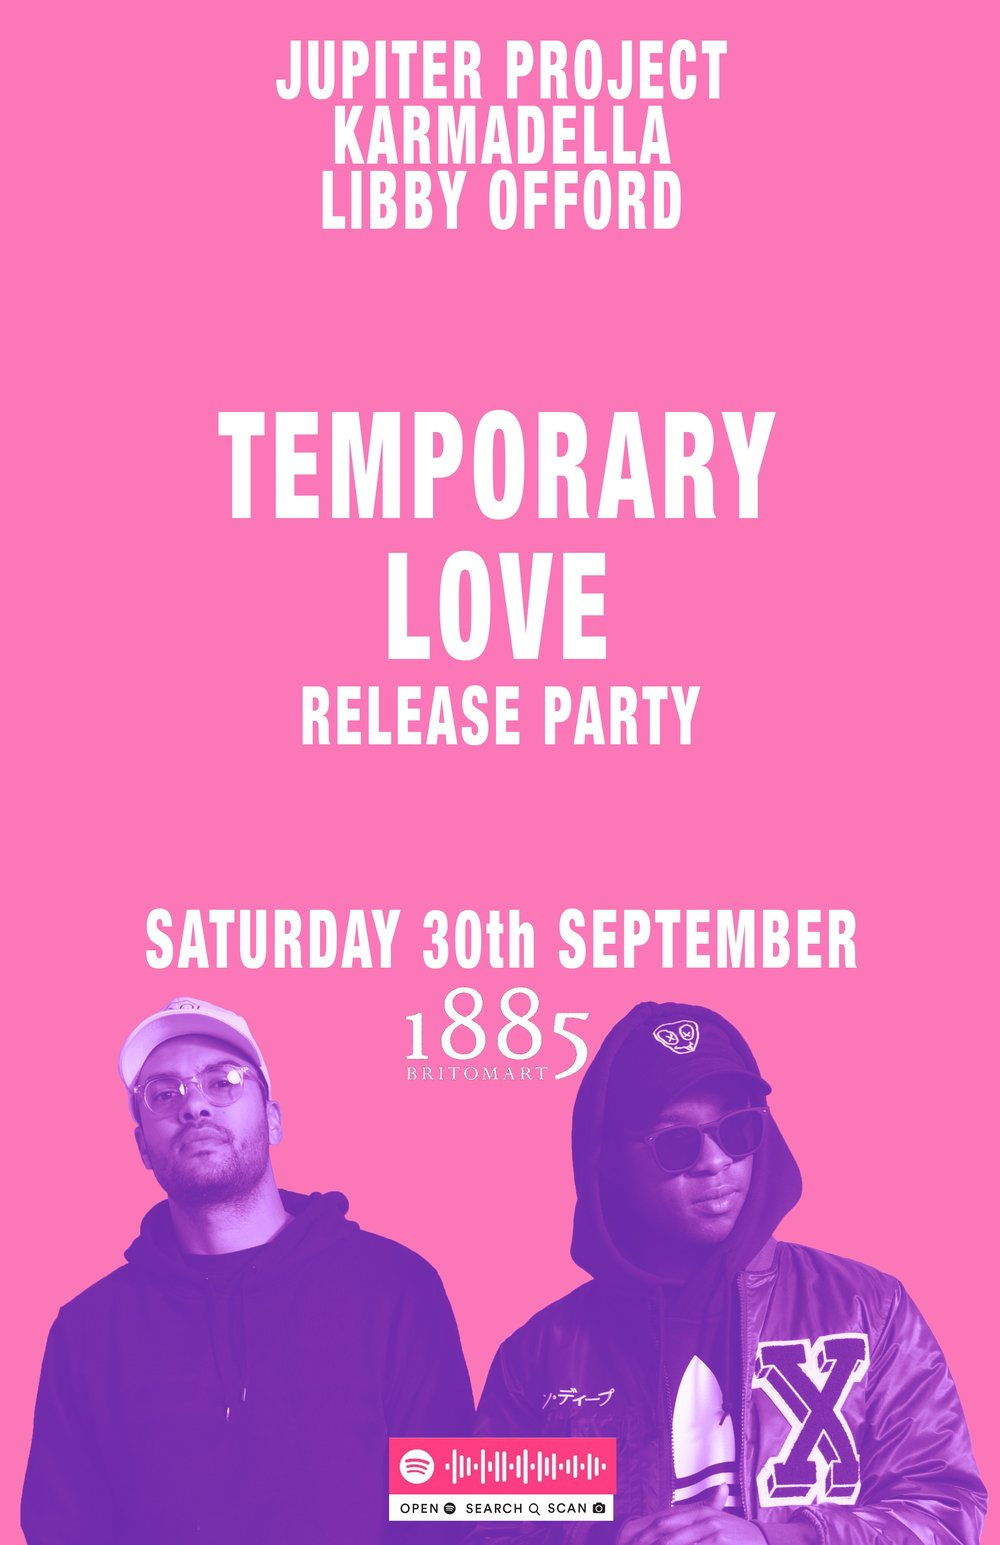 TEMP LOVE RELEASE PARTY POSTER.jpg